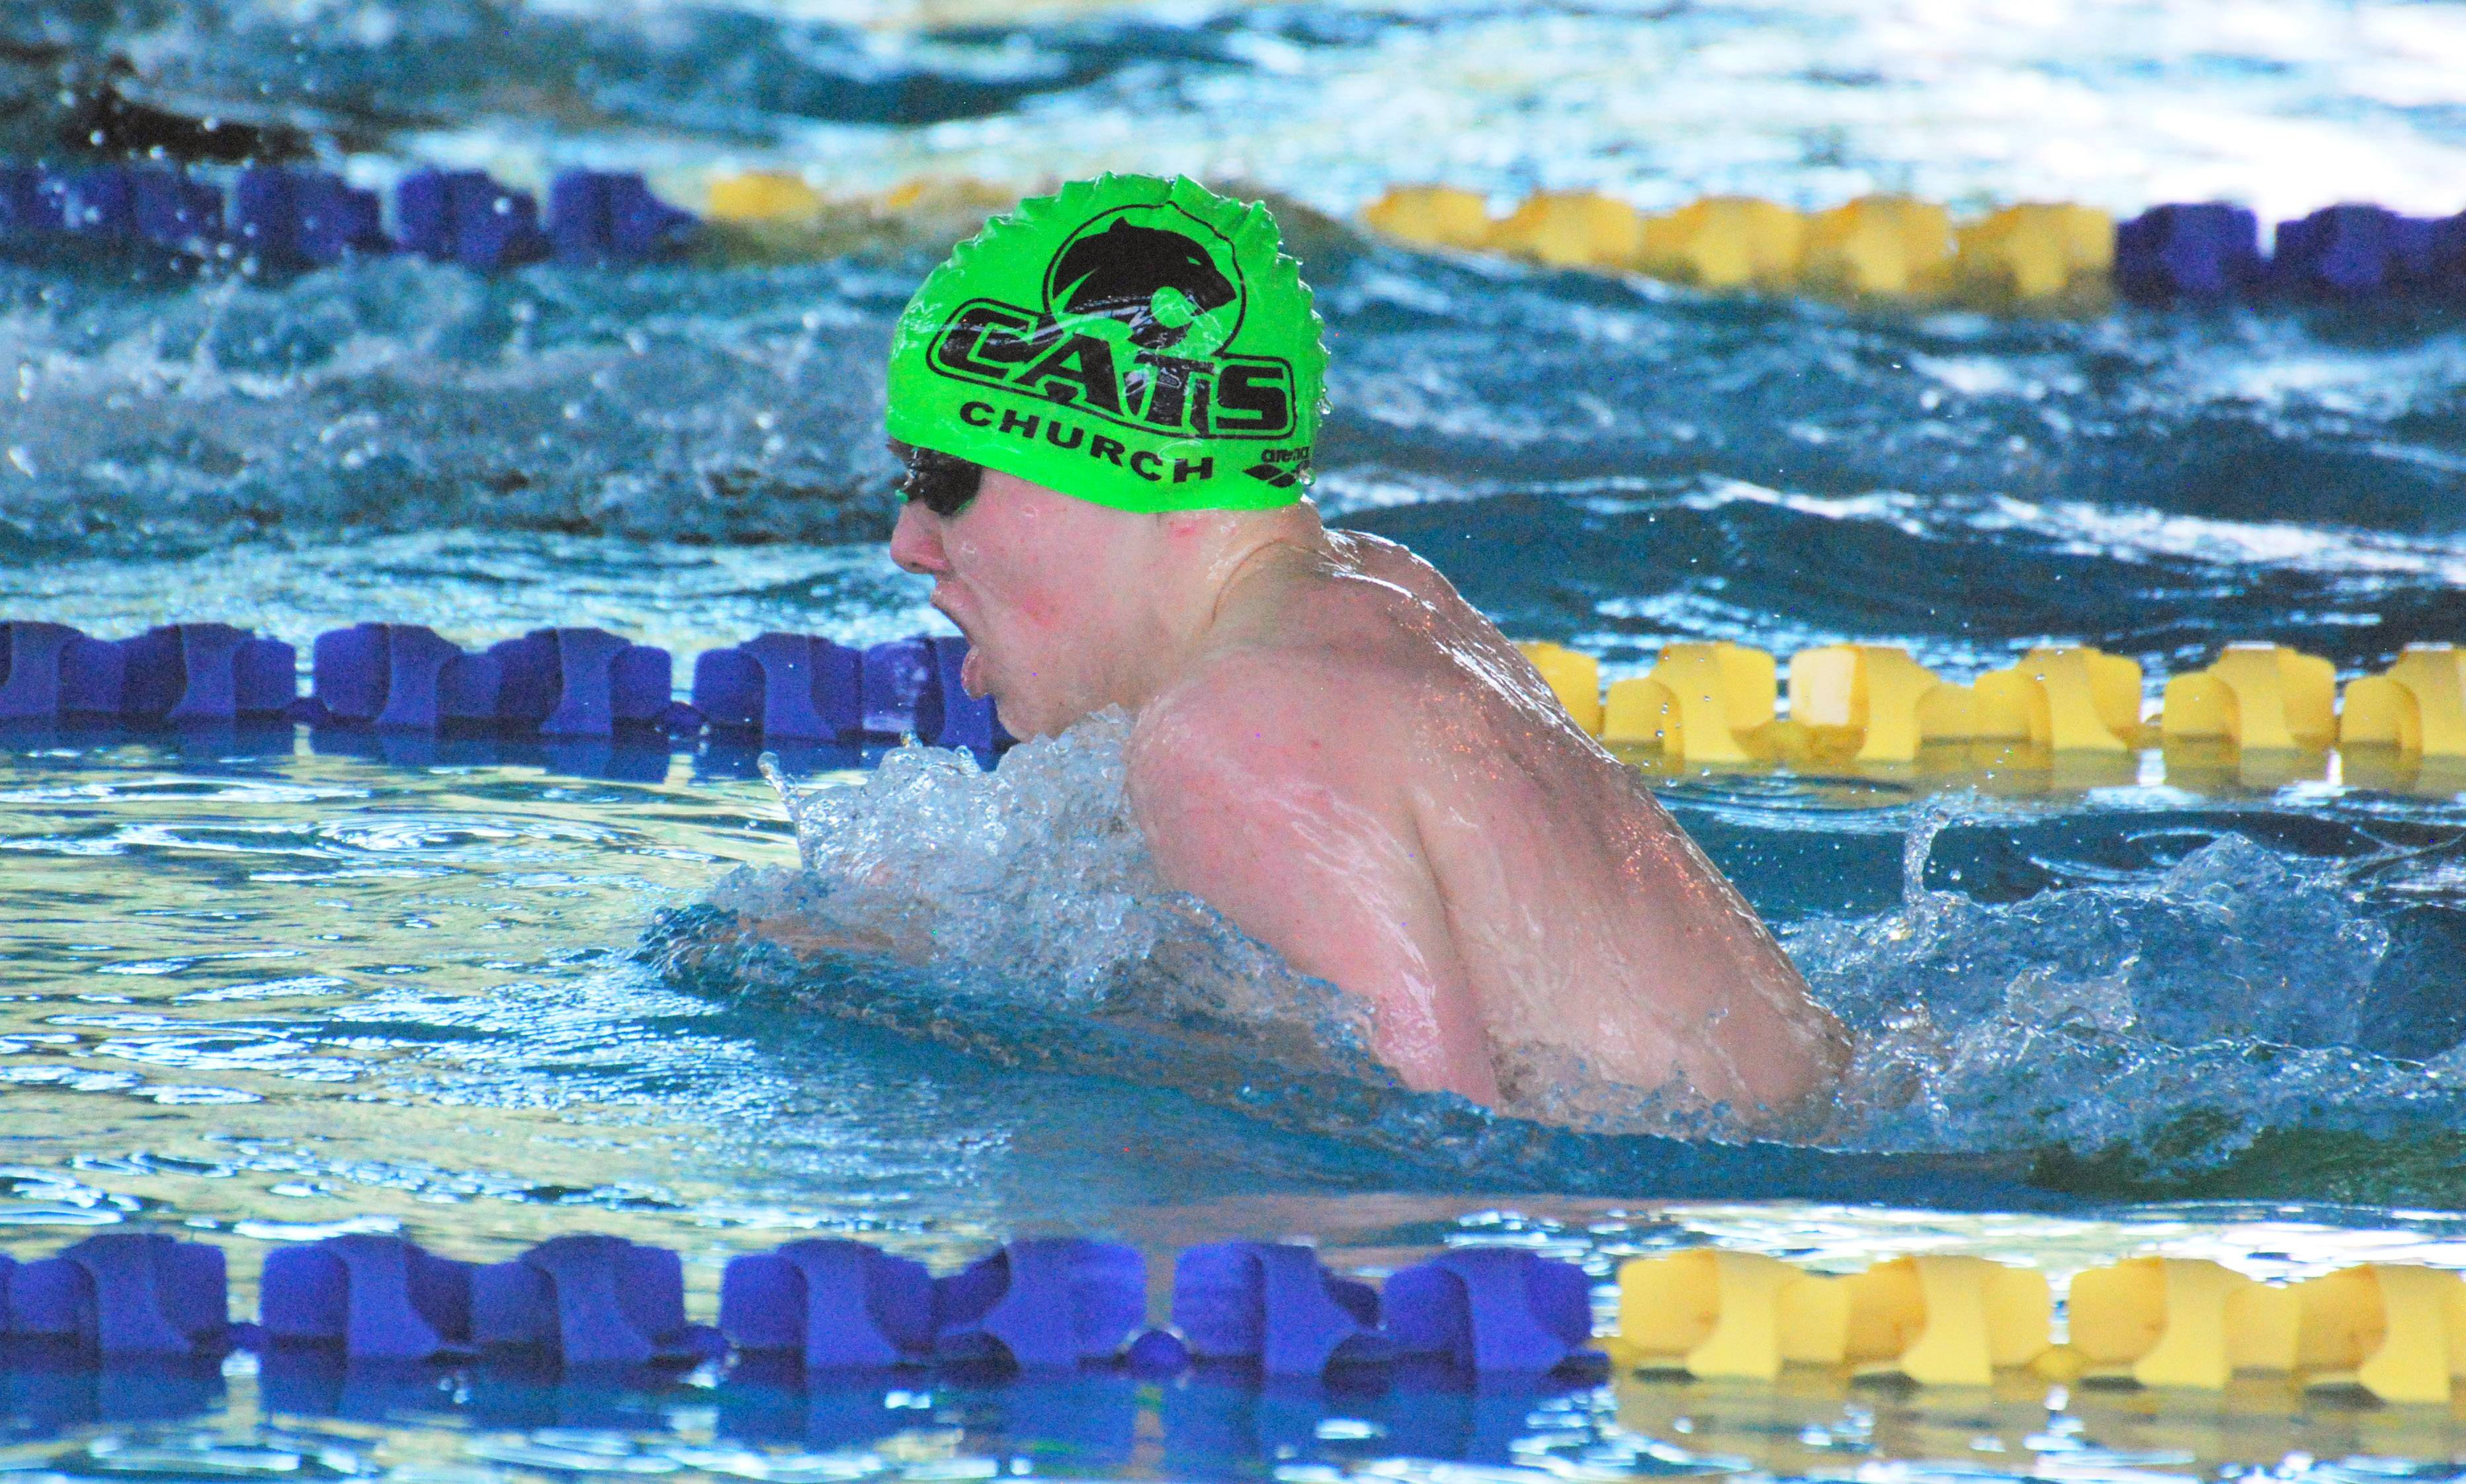 Josh Church competed with the CATS Aquatic swim club. Josh, 17, died last year, and a swim meet set for this weekend will honor his memory.